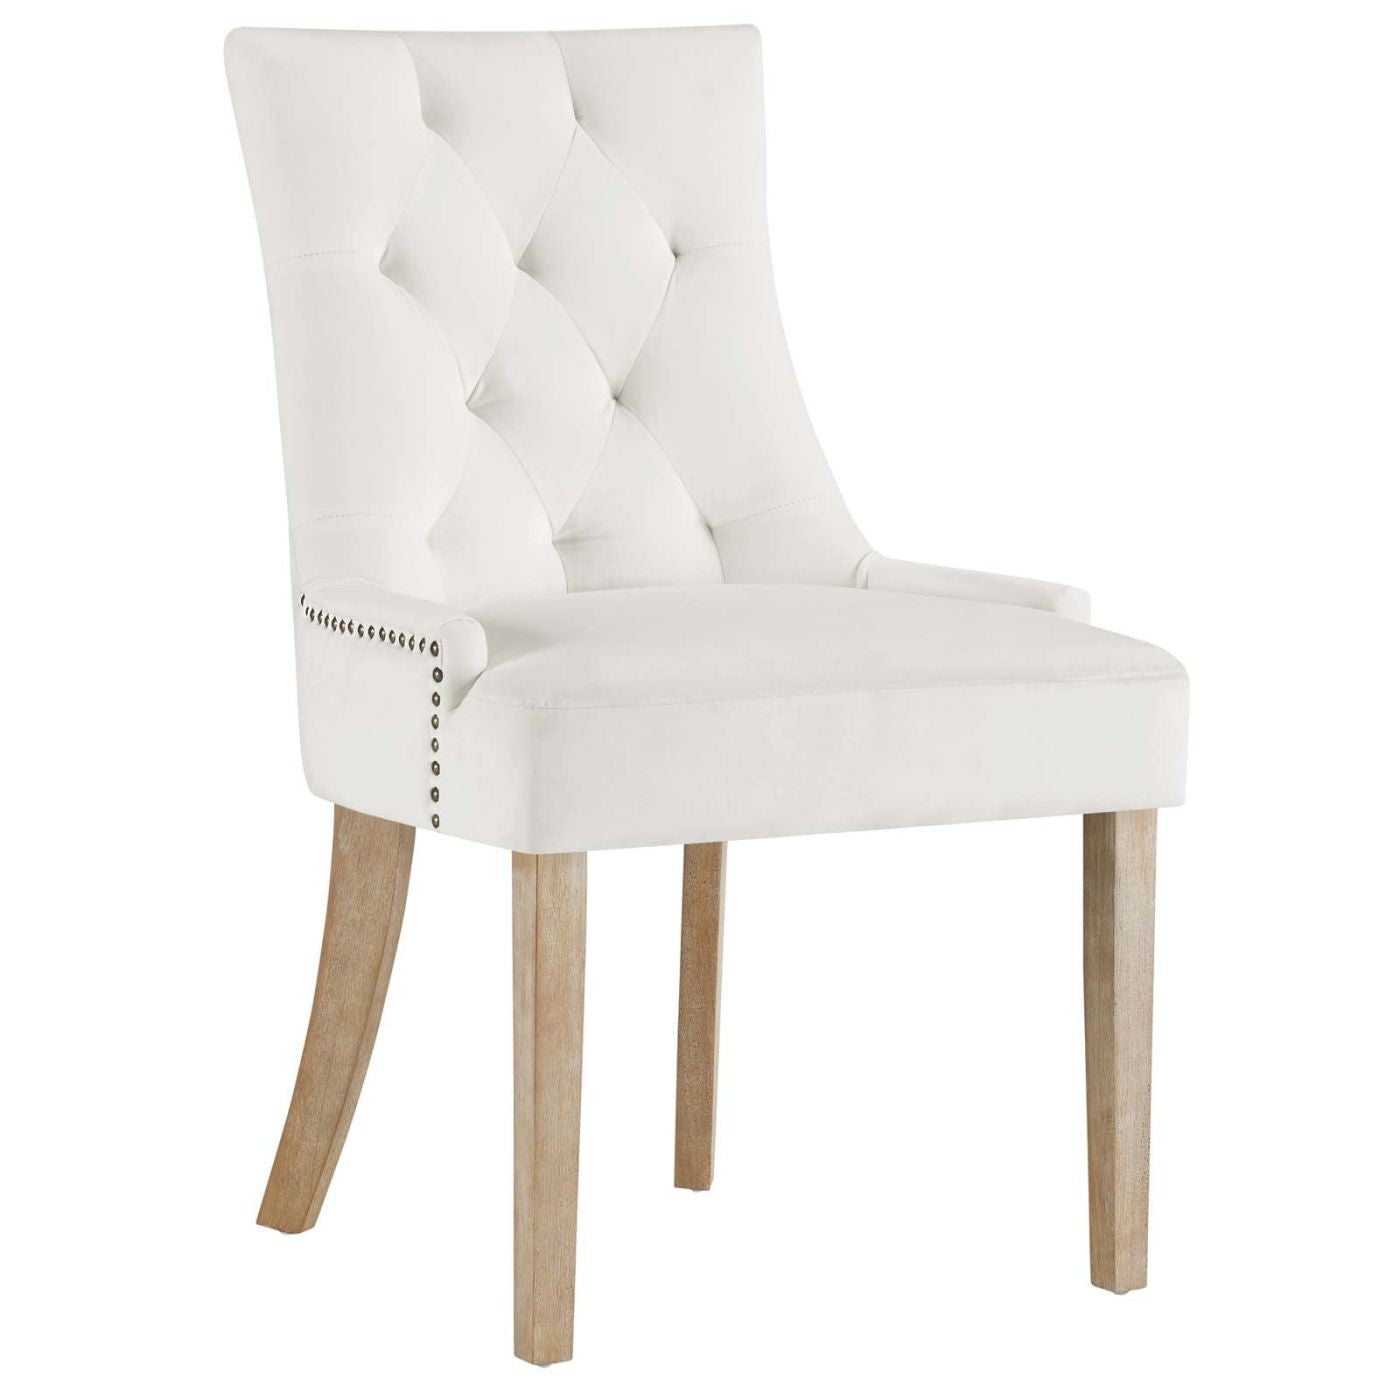 Modway Dining Chairs On Sale Eei 2577 Blk Pose